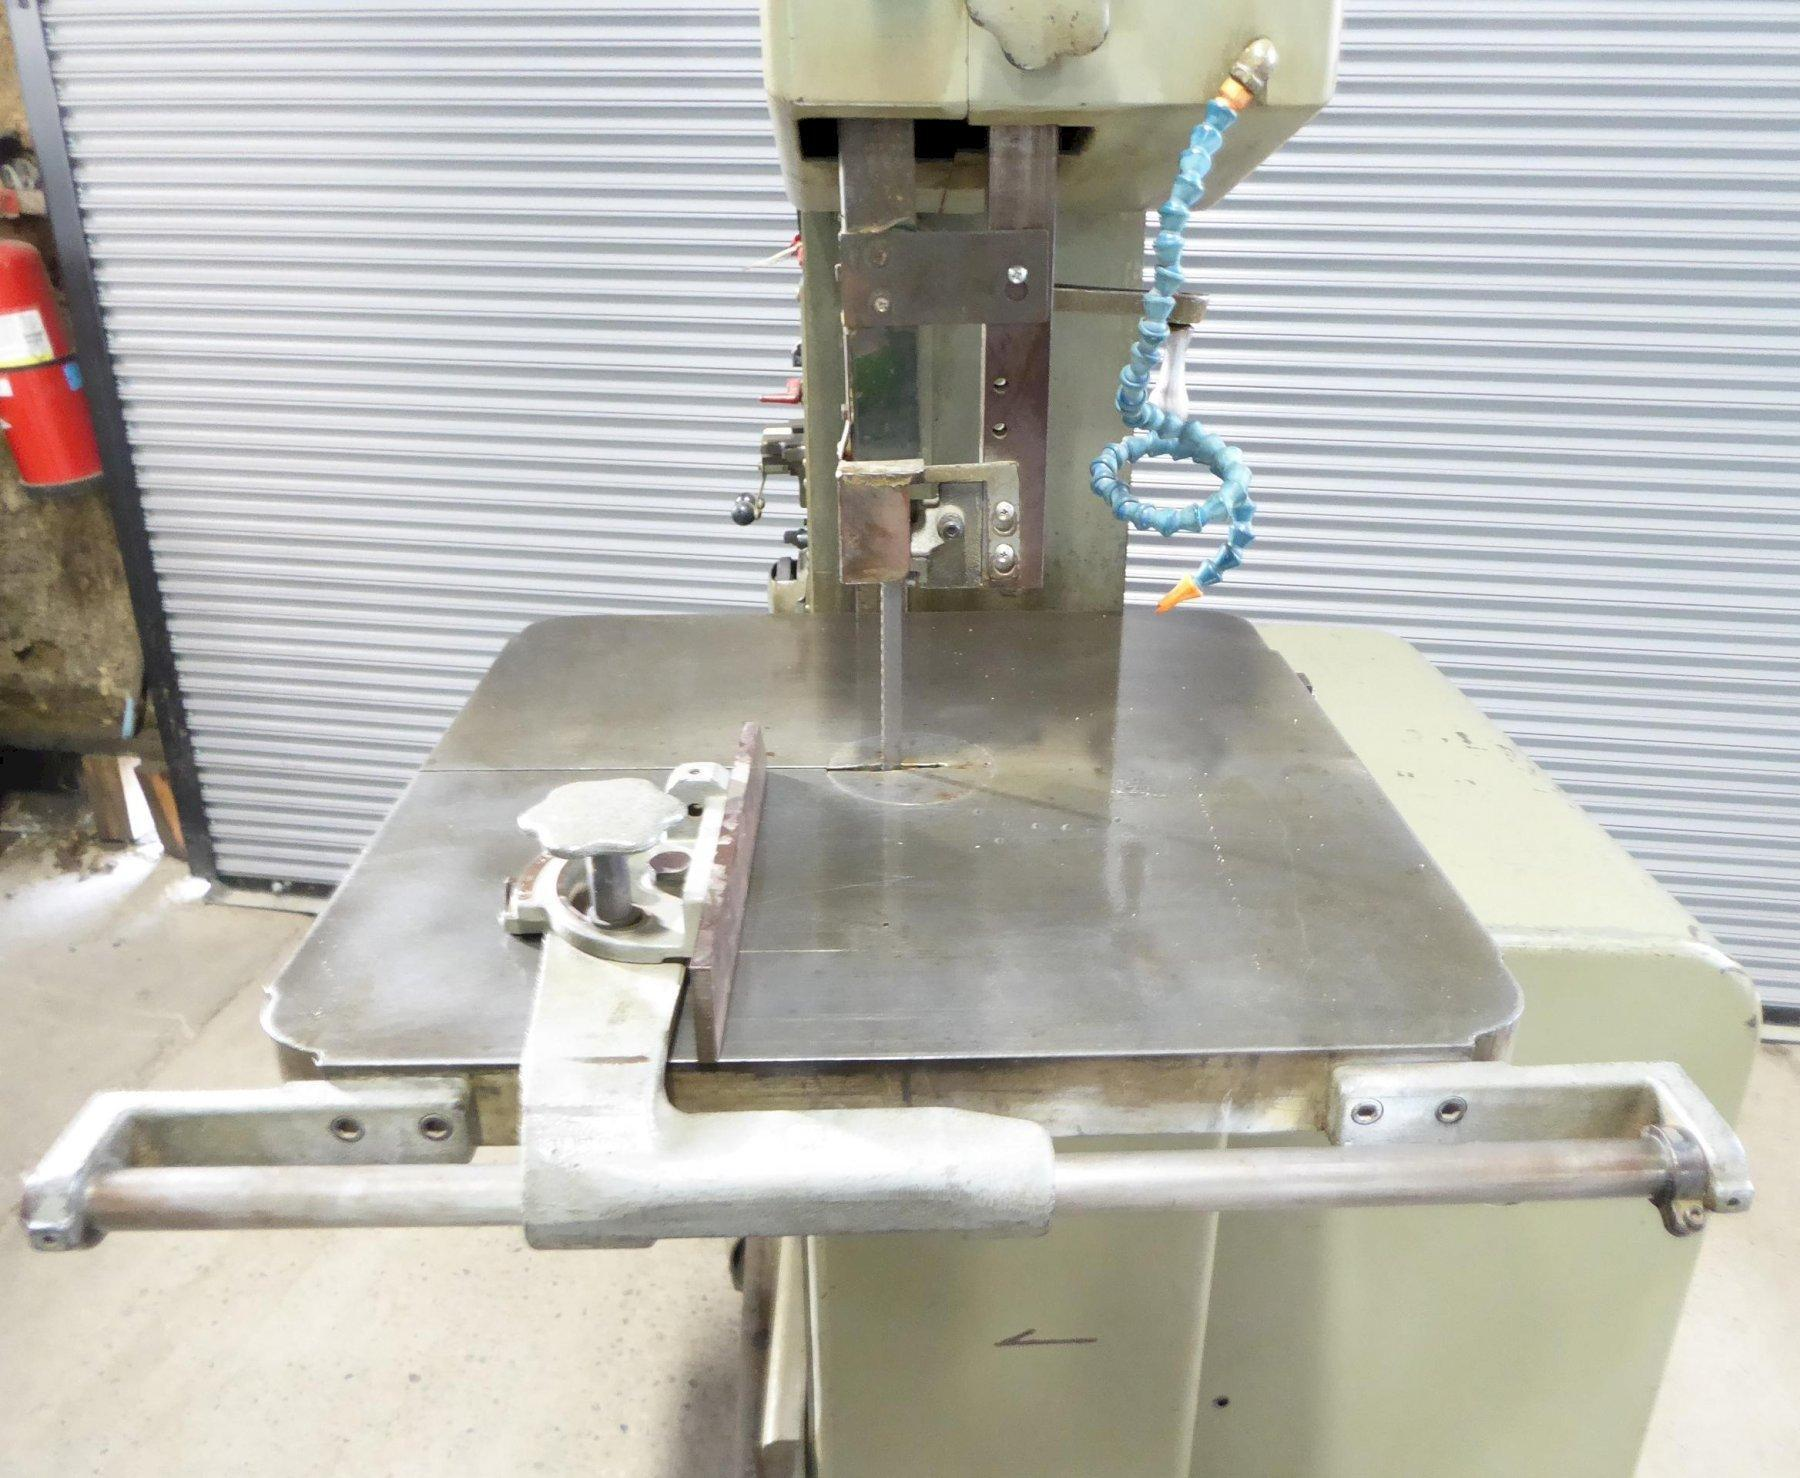 "16"" DoAll Vertical Band Saw No. 1612-0, 12"" Maximum Height, 50-5200 FPM, 24"" x 24"" Tbl., Clean"